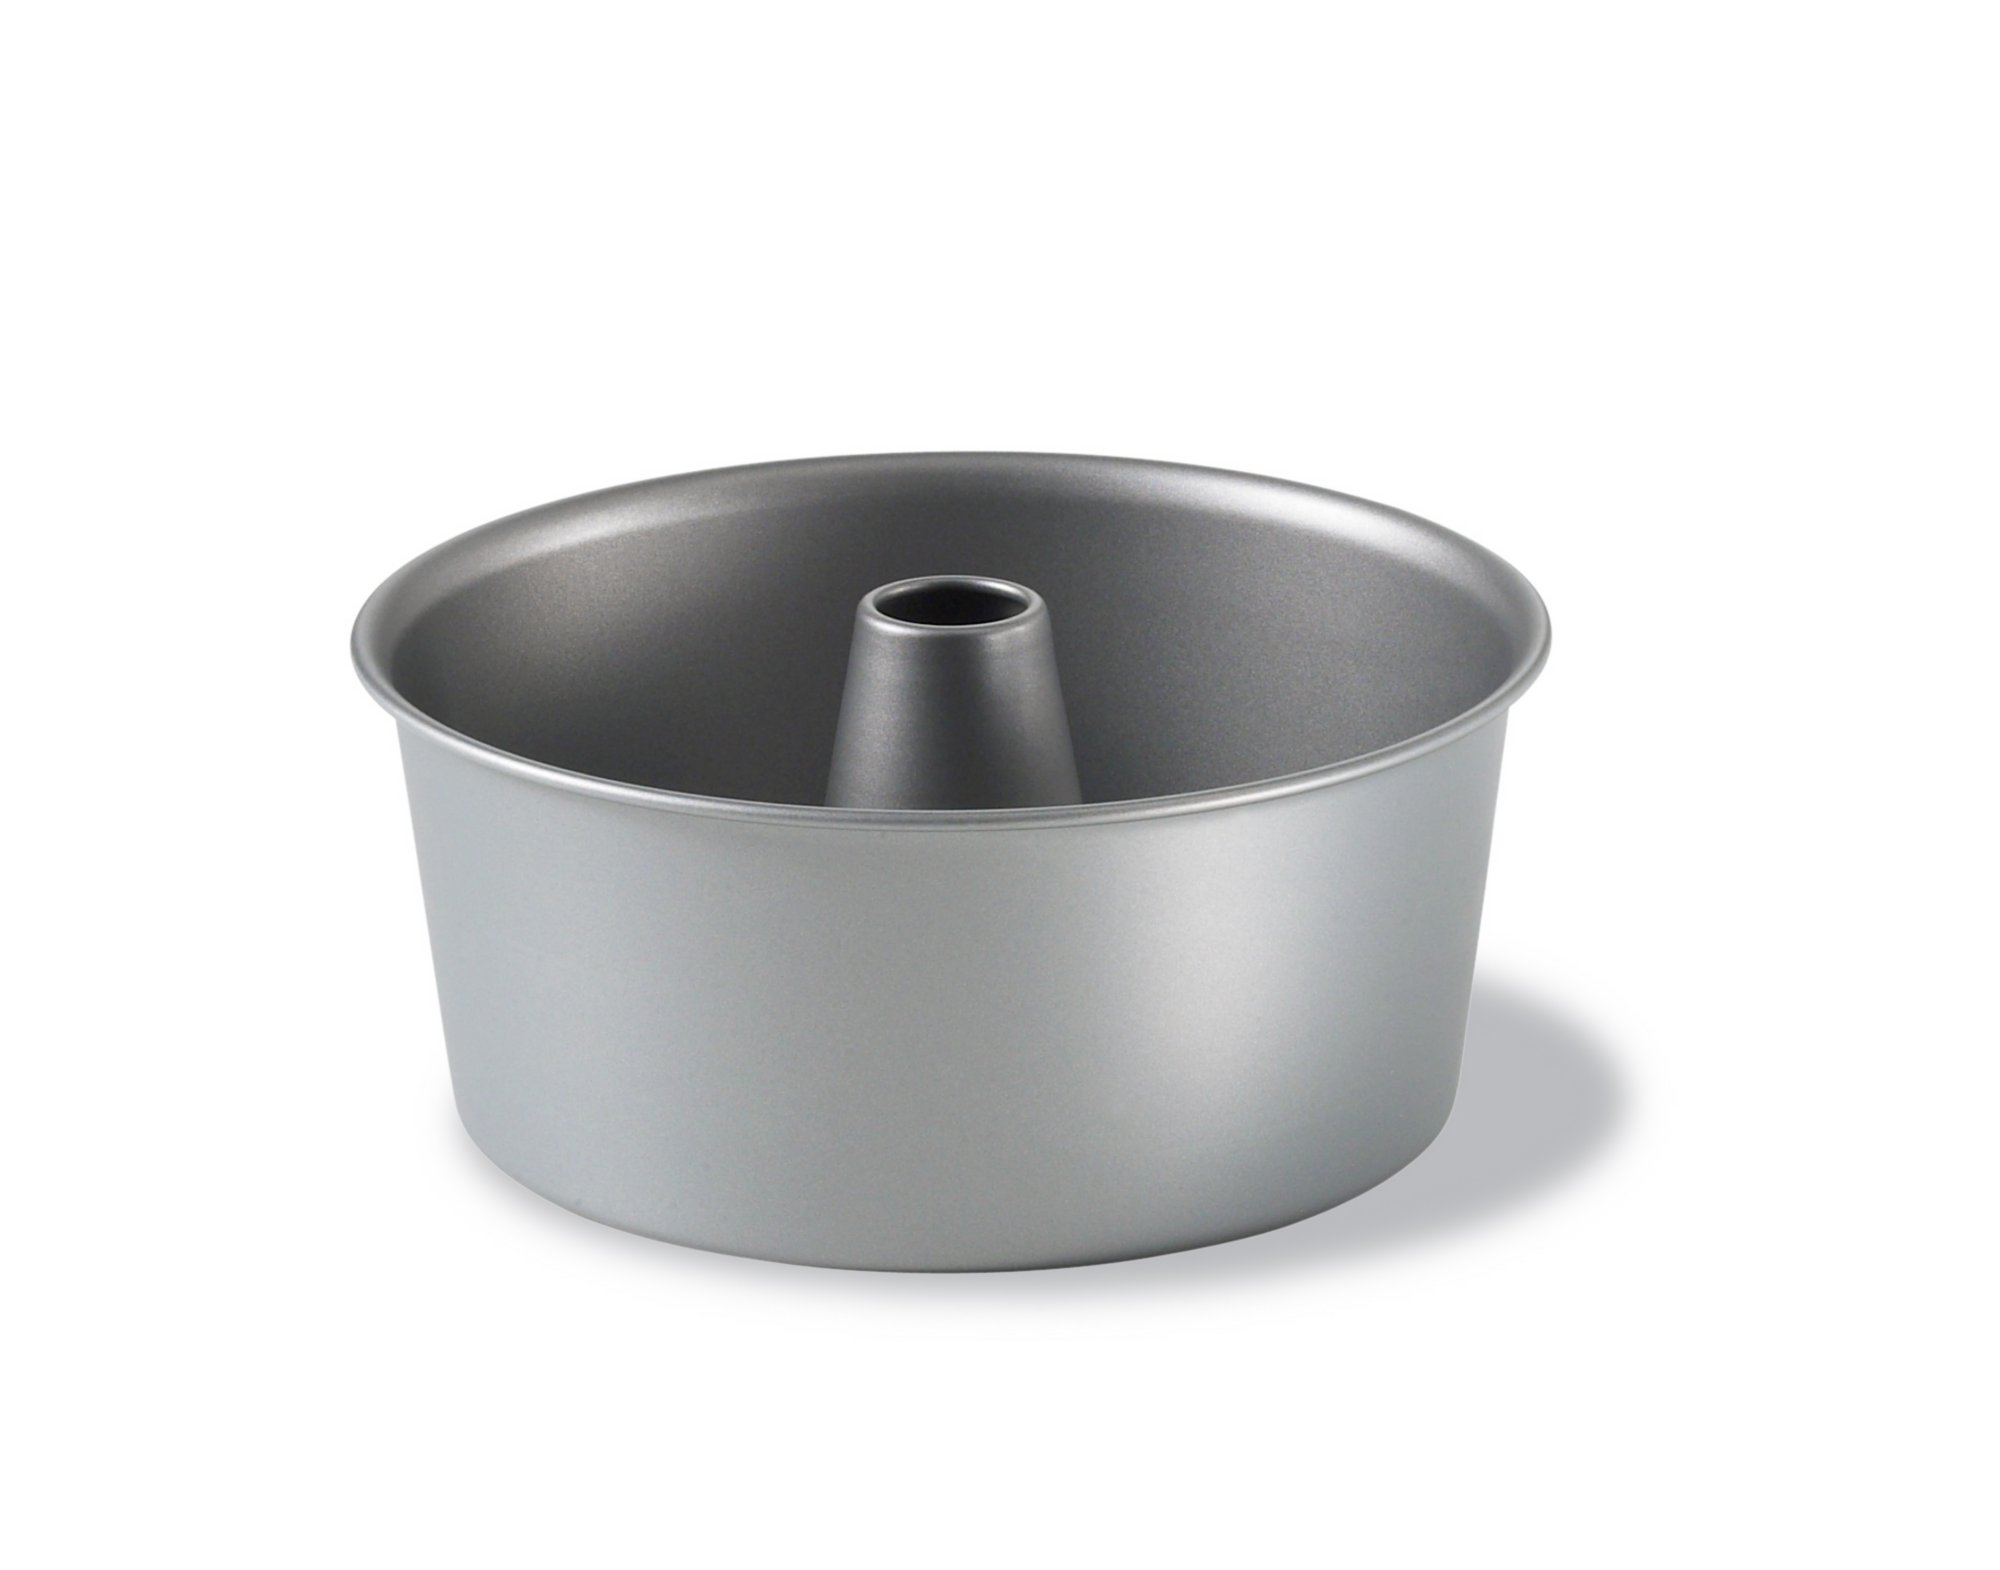 Calphalon Nonstick Bakeware 10-in. Angel Food Cake Pan